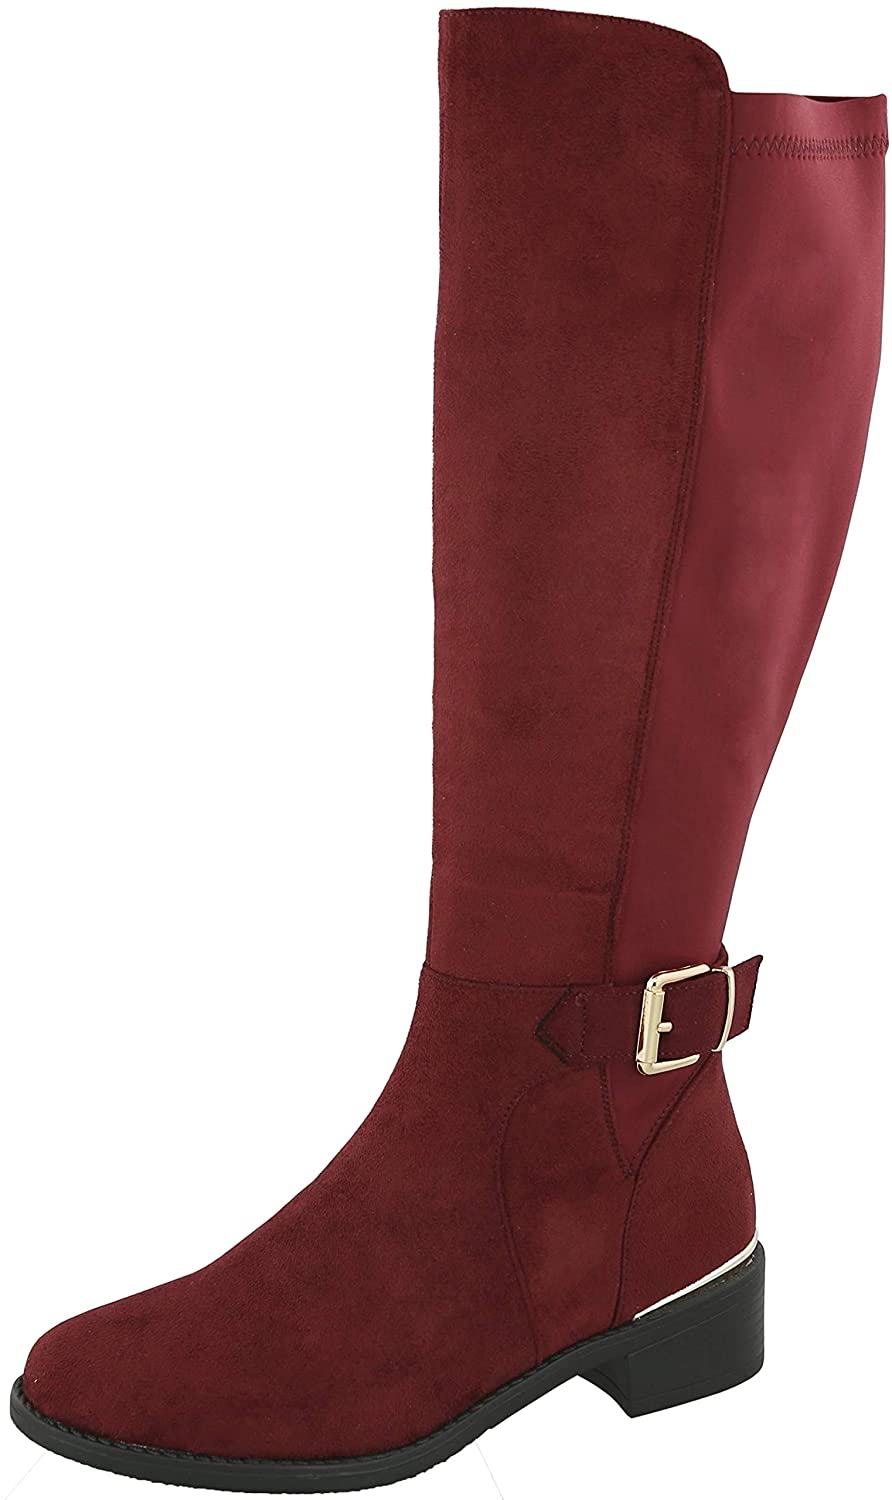 Wine Imsu Cambridge Select Women's Round Toe Stretch Low Heel Knee-High Riding Boot